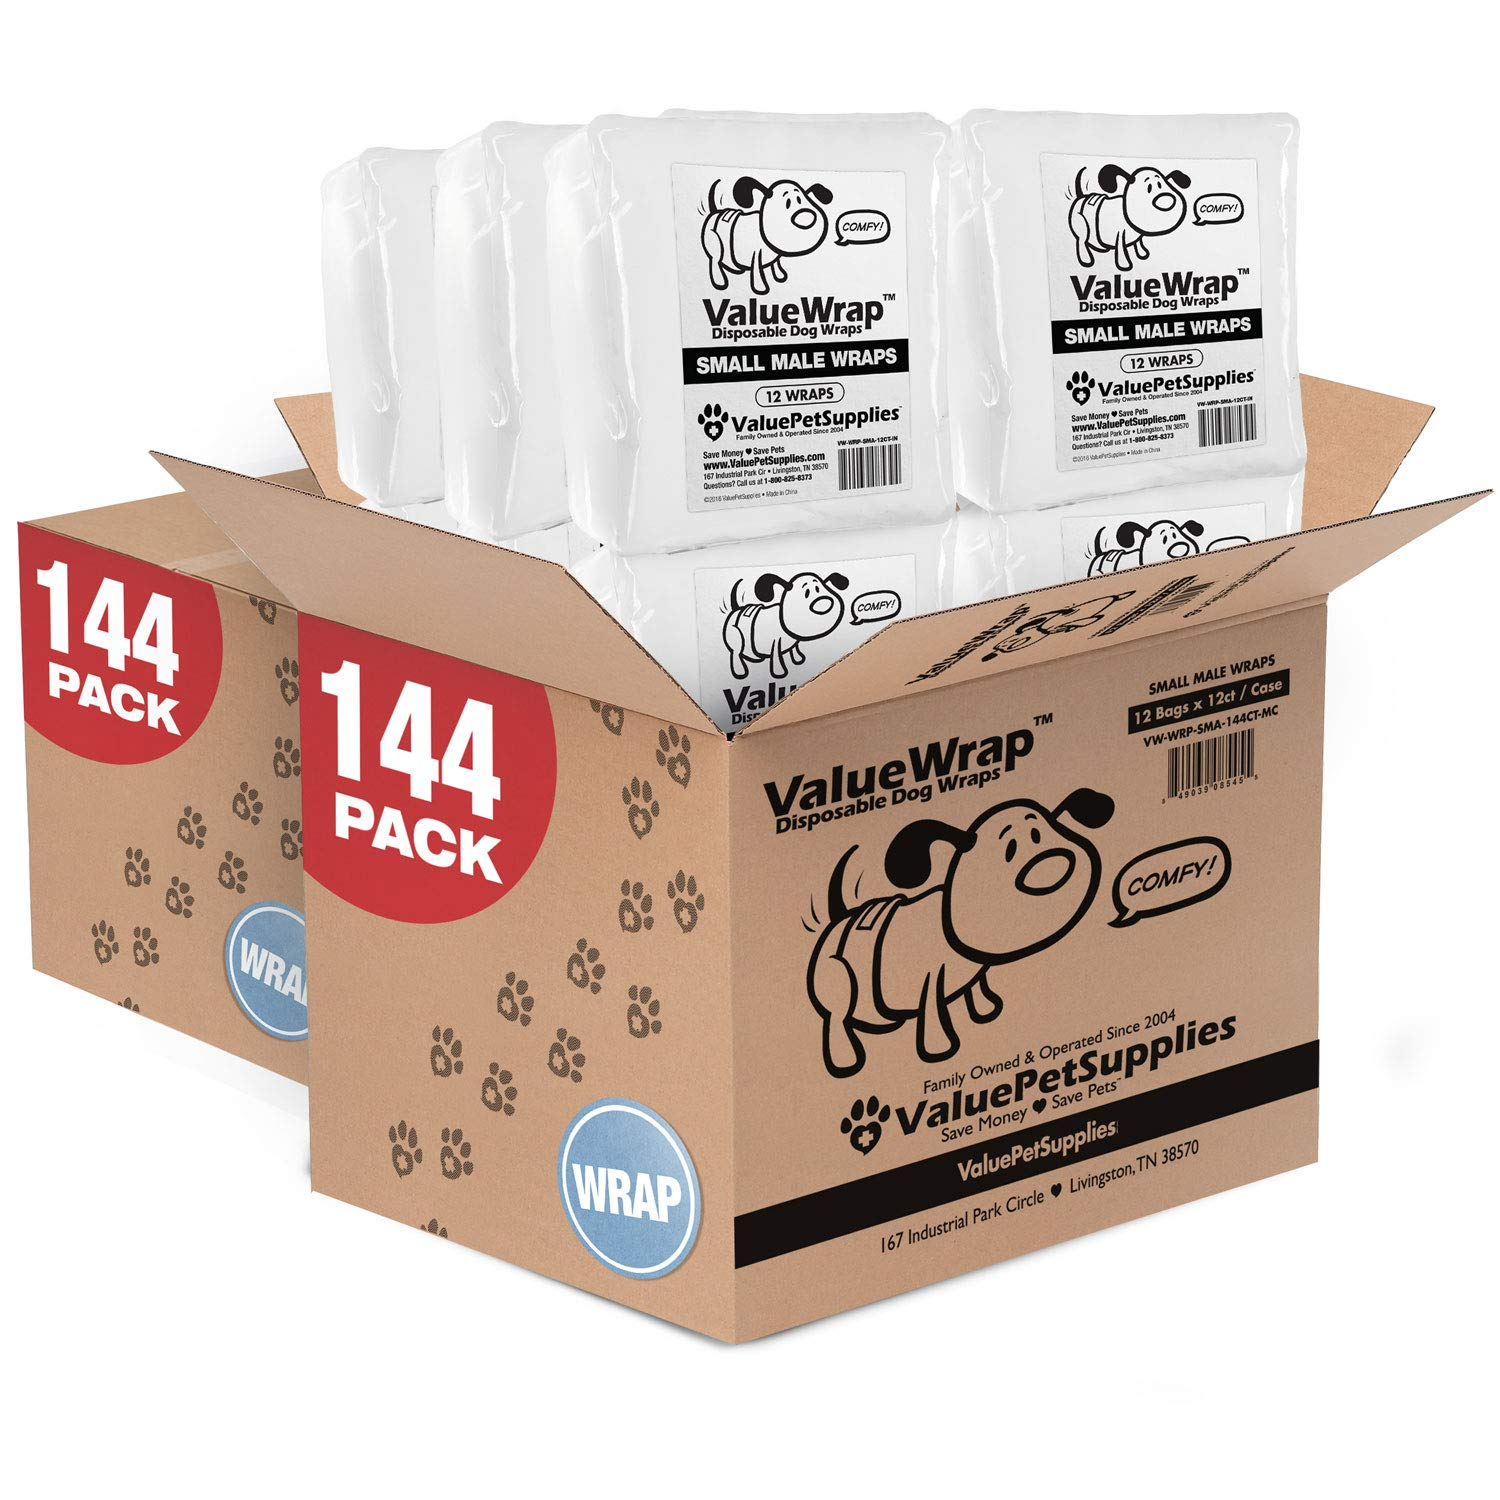 ValueWrap Disposable Male Dog Diapers, 2-Tab Small, 288 Count - Absorbent Male Wraps for Incontinence, Excitable Urination & Travel, Fur-Friendly Fasteners, Leak Protection, Wetness Indicator by ValueWrap